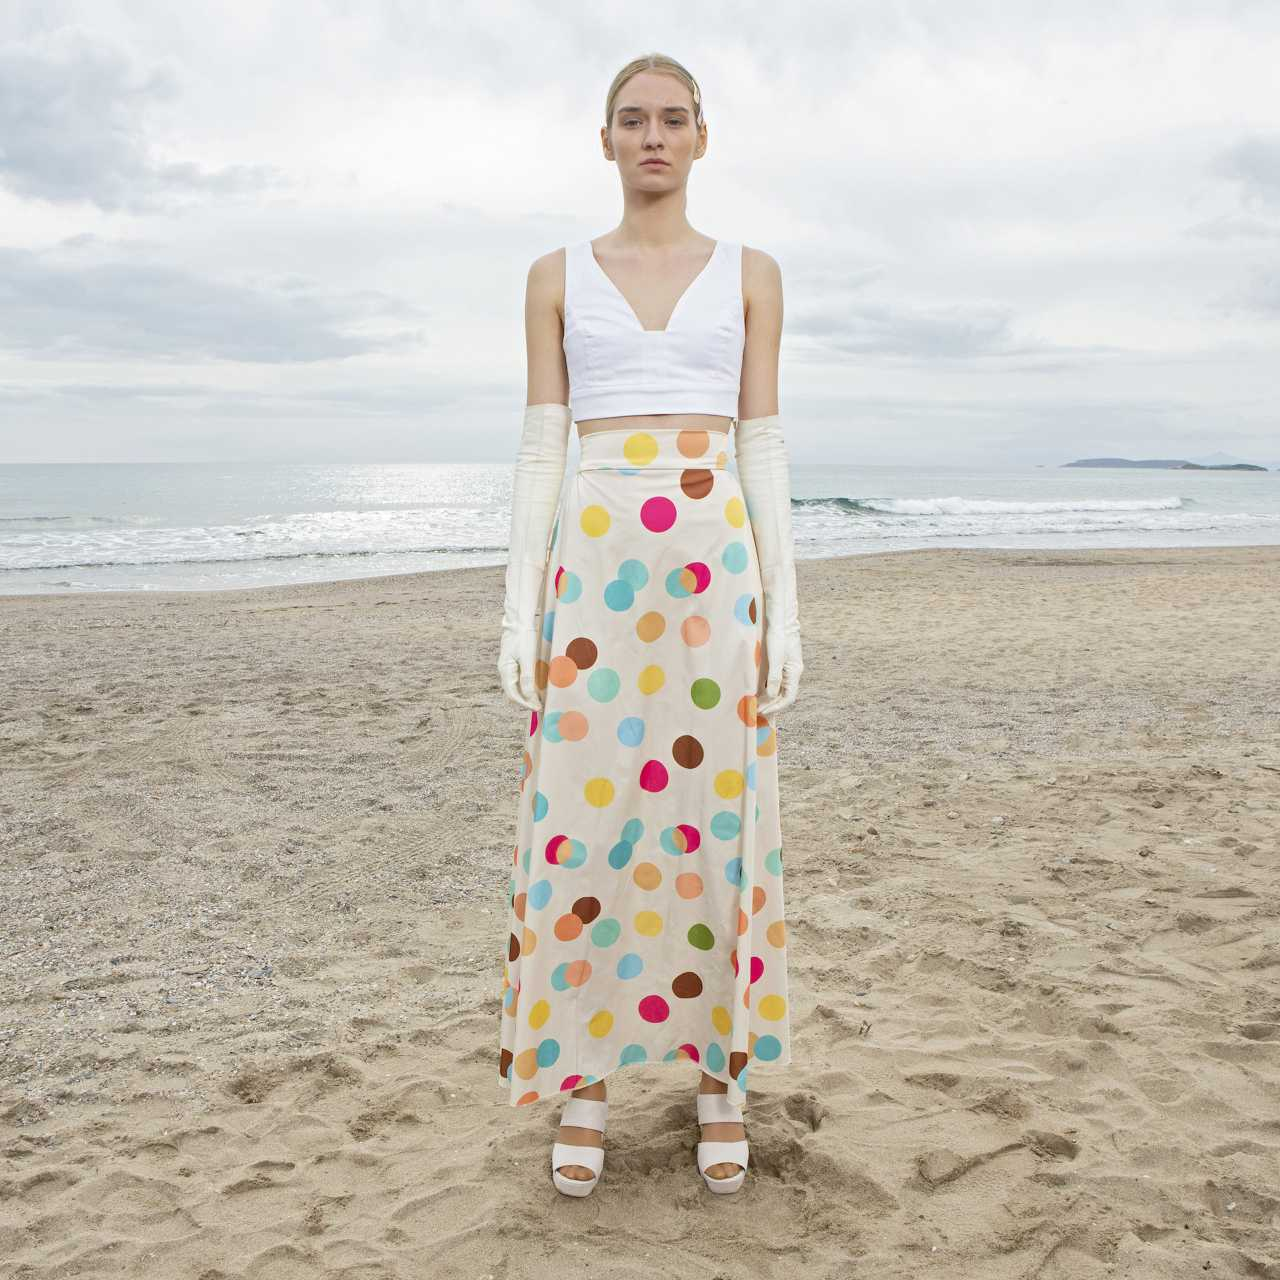 Product preview: Tulle Tutu Skirt Midi Ivory Multicolor Dotted Skirt